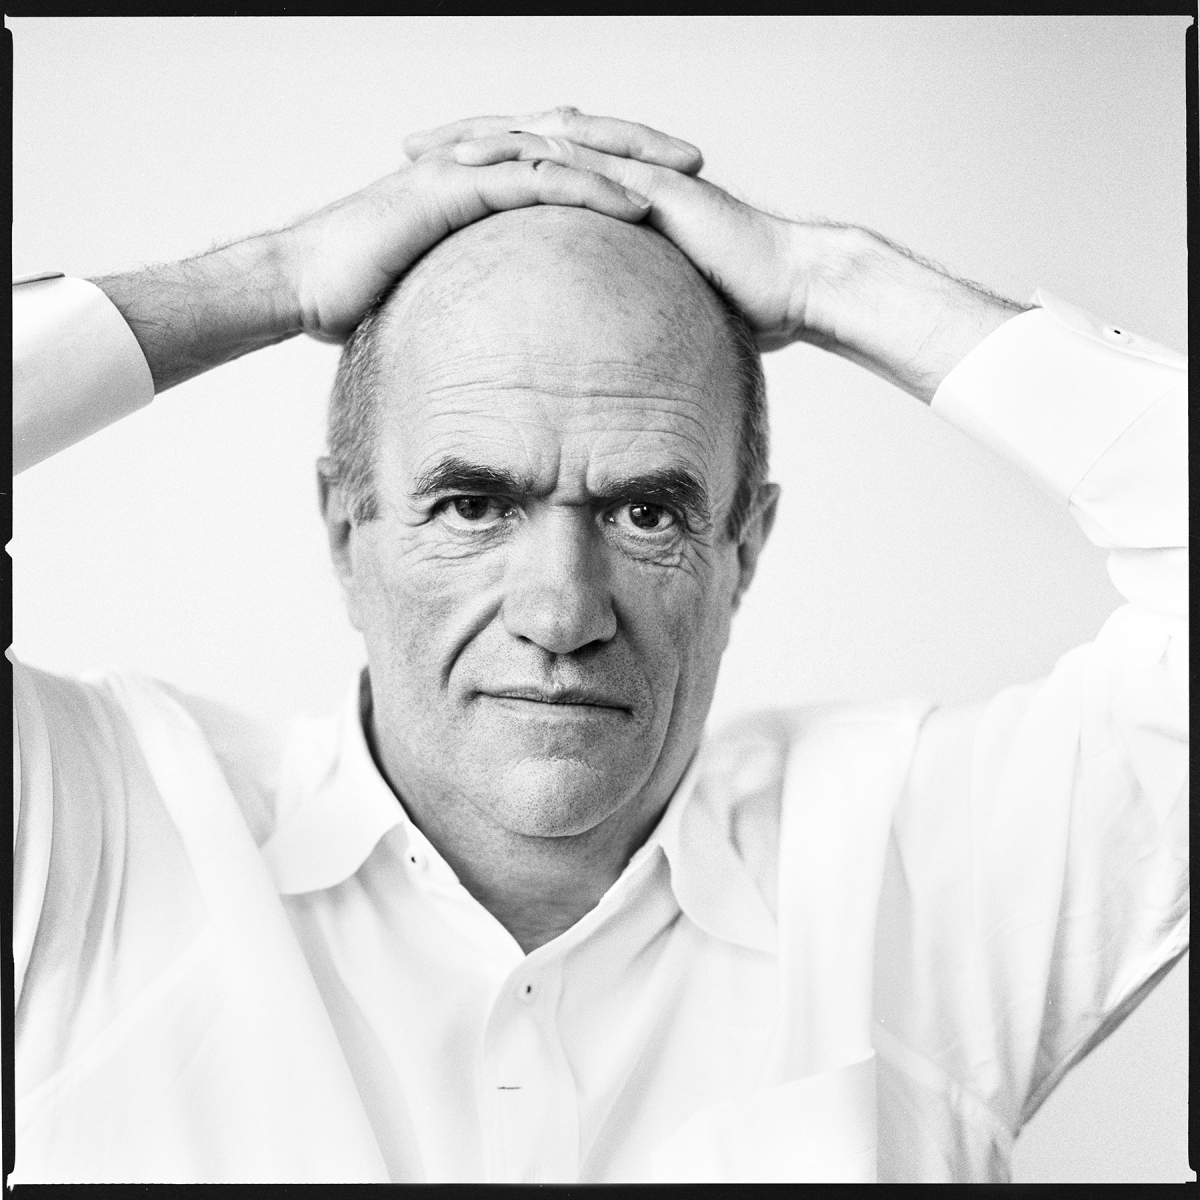 A Conversation With Writer Colm Tóibín on the 'Close Imagining' of Fiction